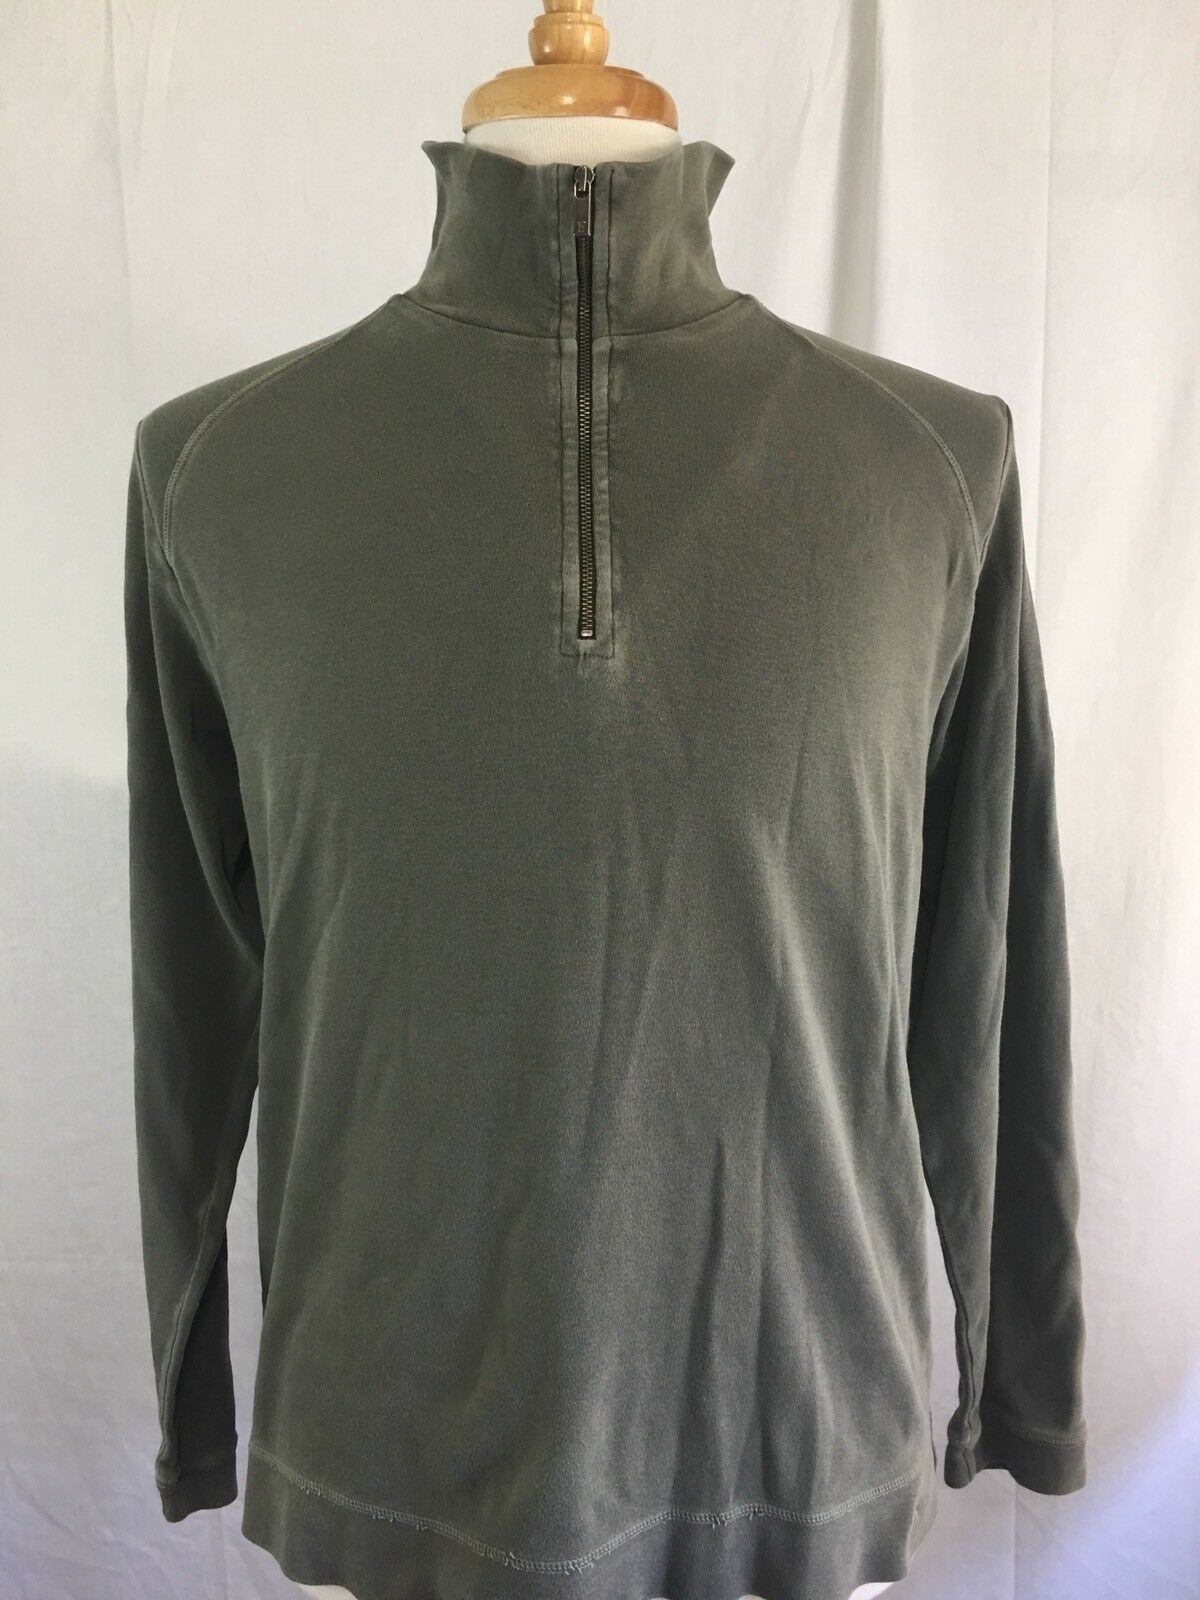 Faconnable Half Zip Sweater Size L